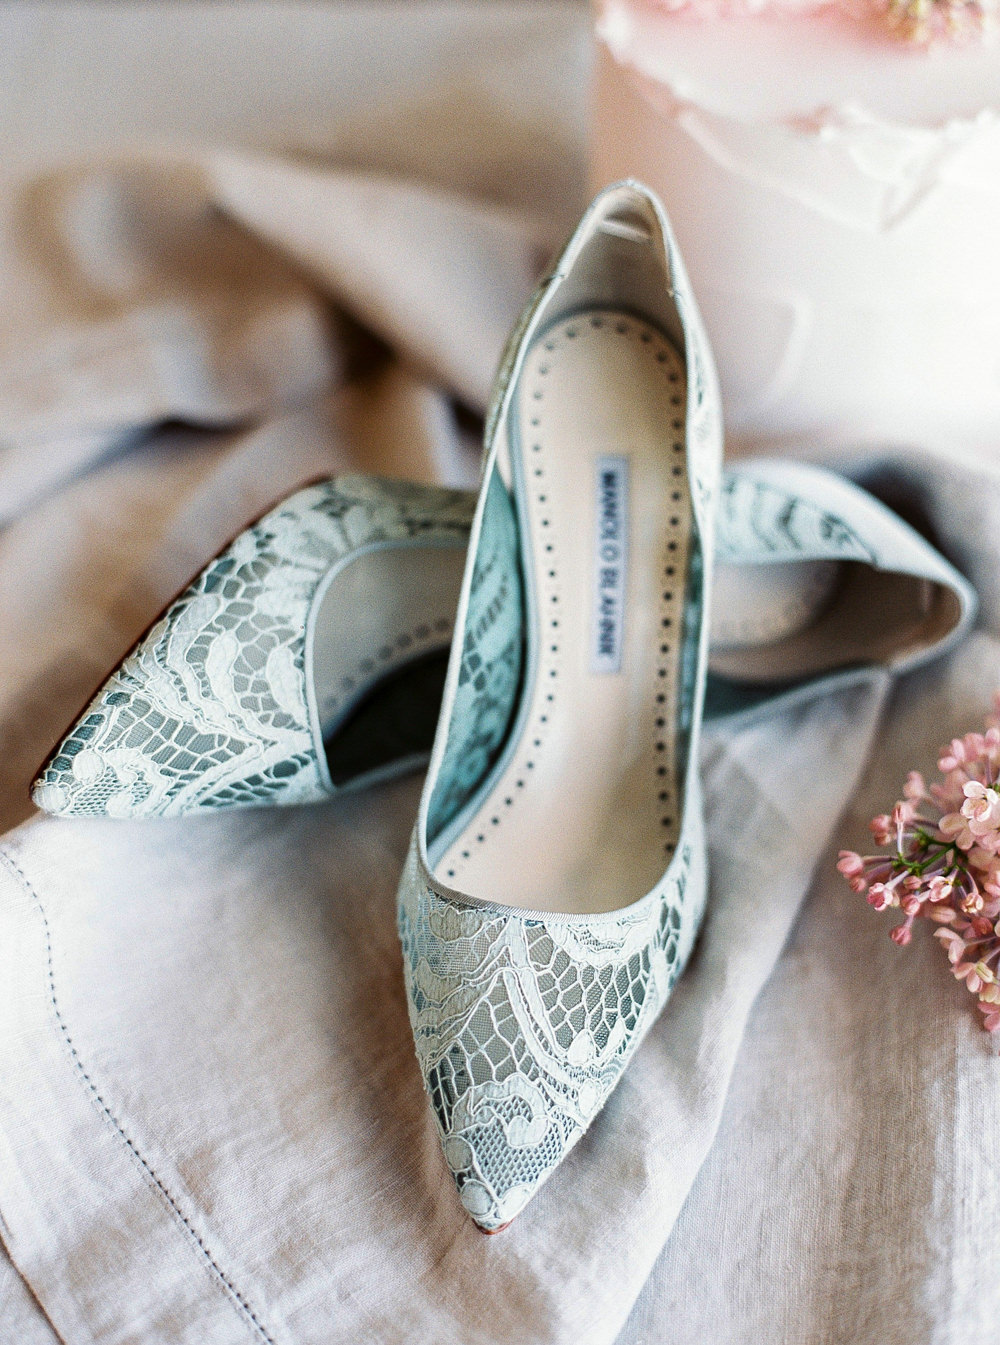 Manolo Blahnik blue lace shoes